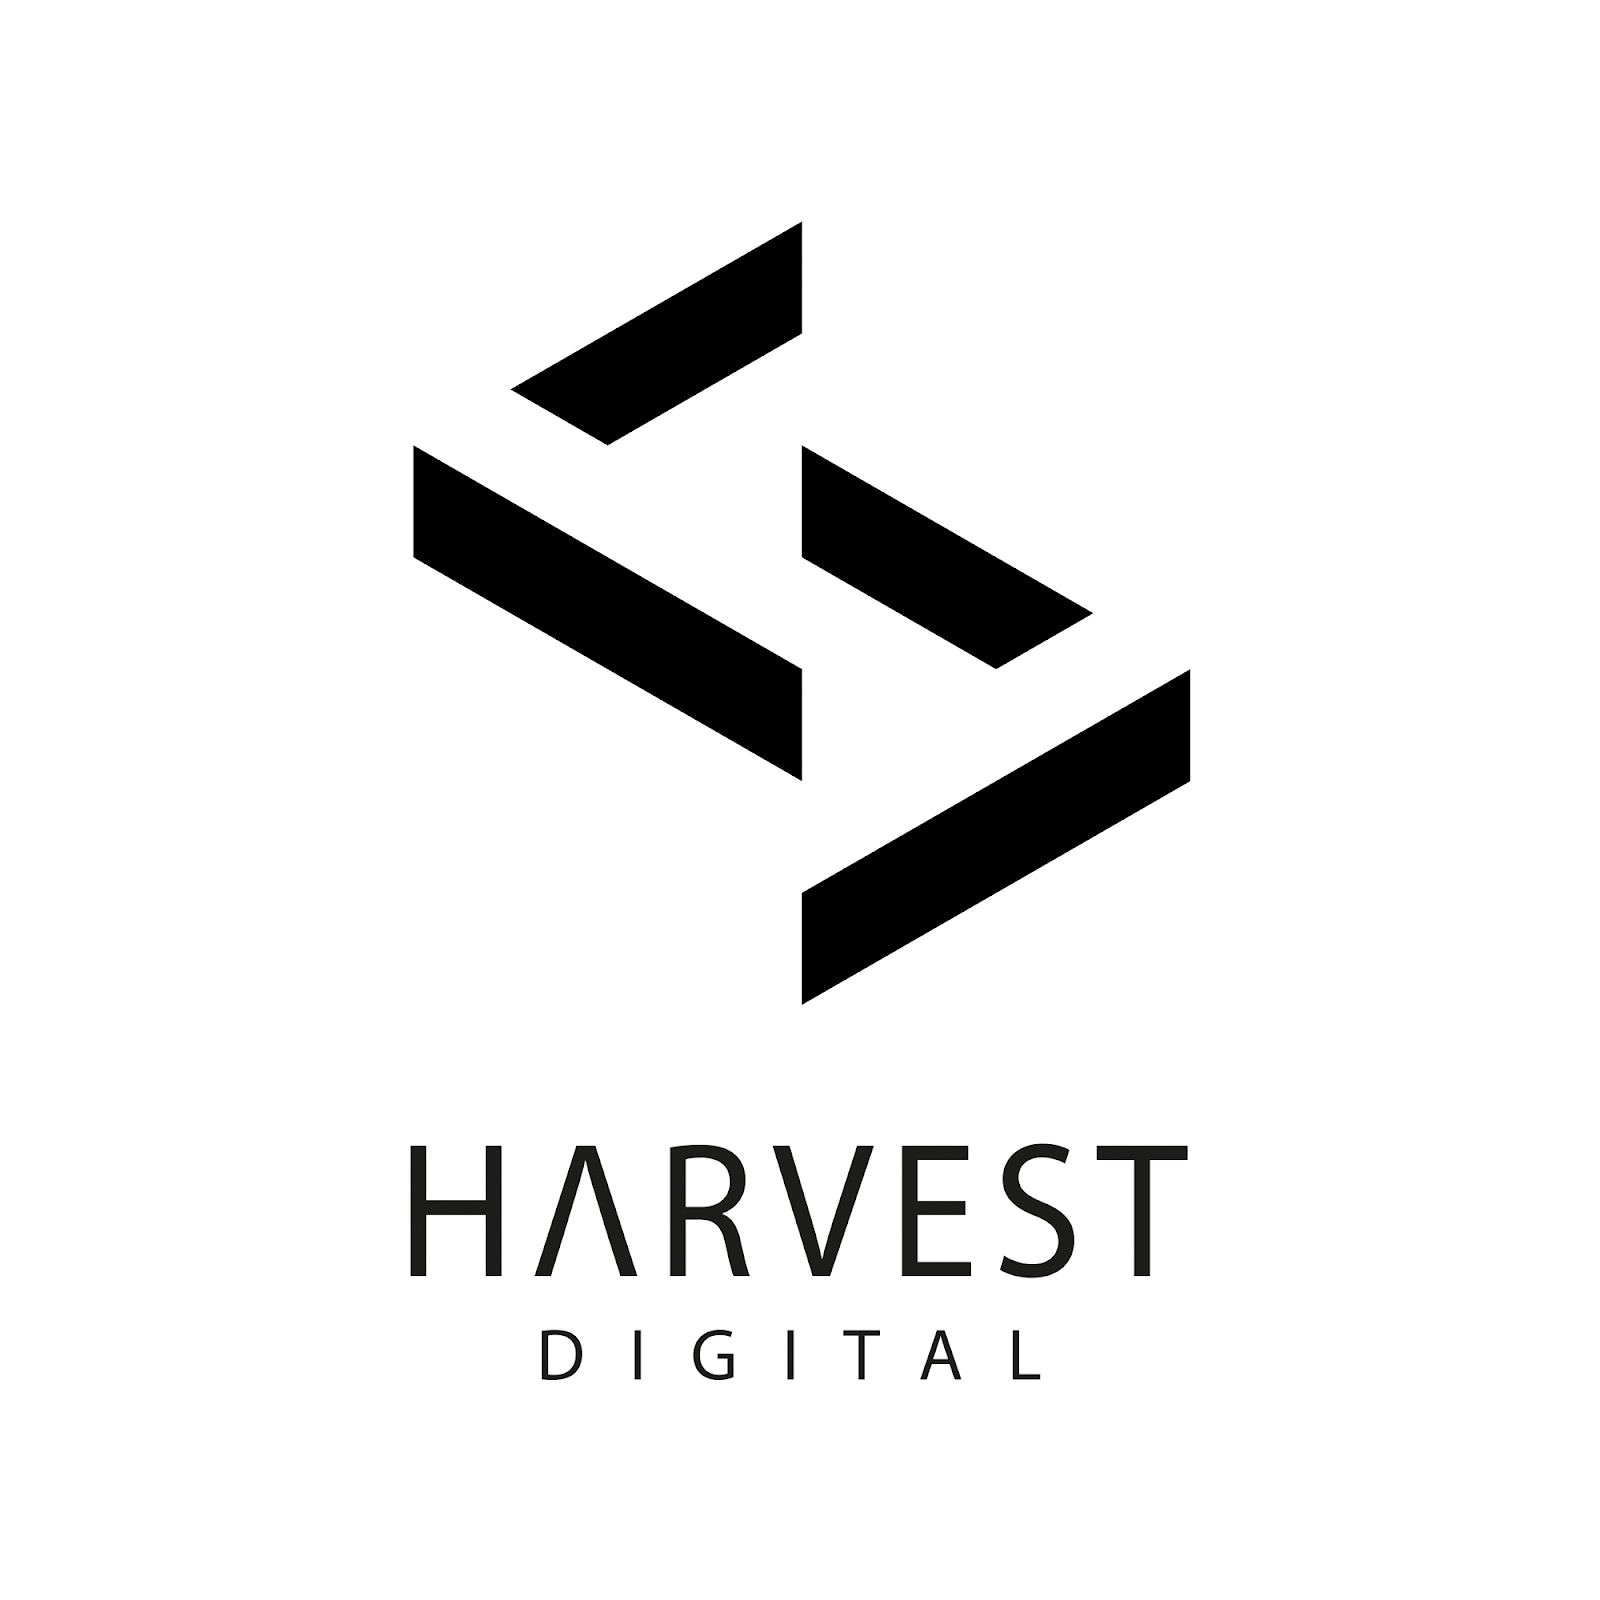 harvest_digital_RGB.jpg